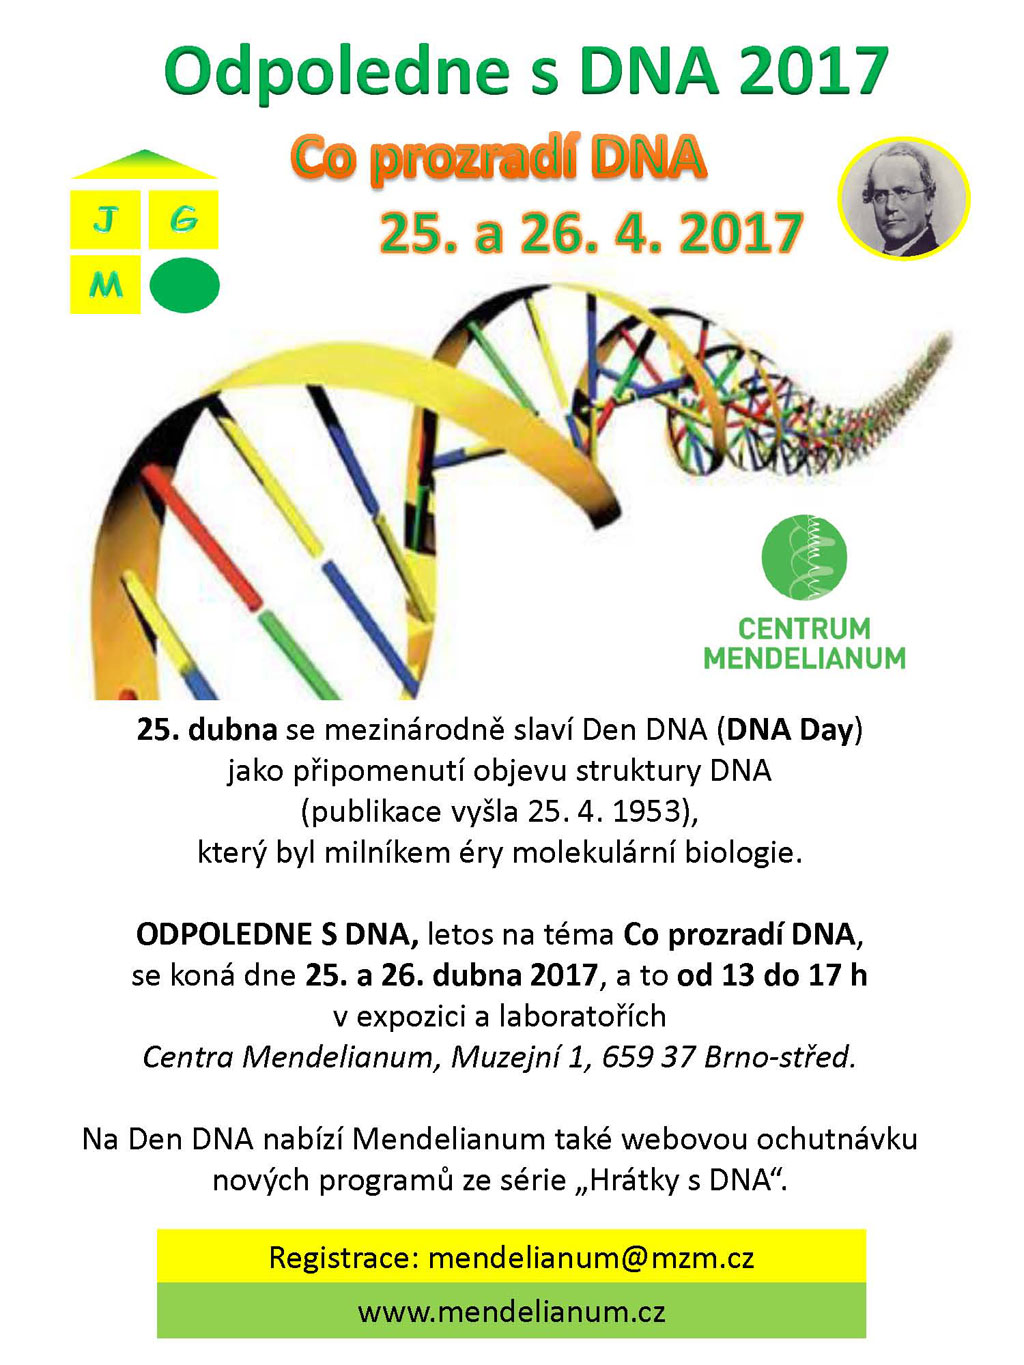 Odpo DNA2017 pozvanka web